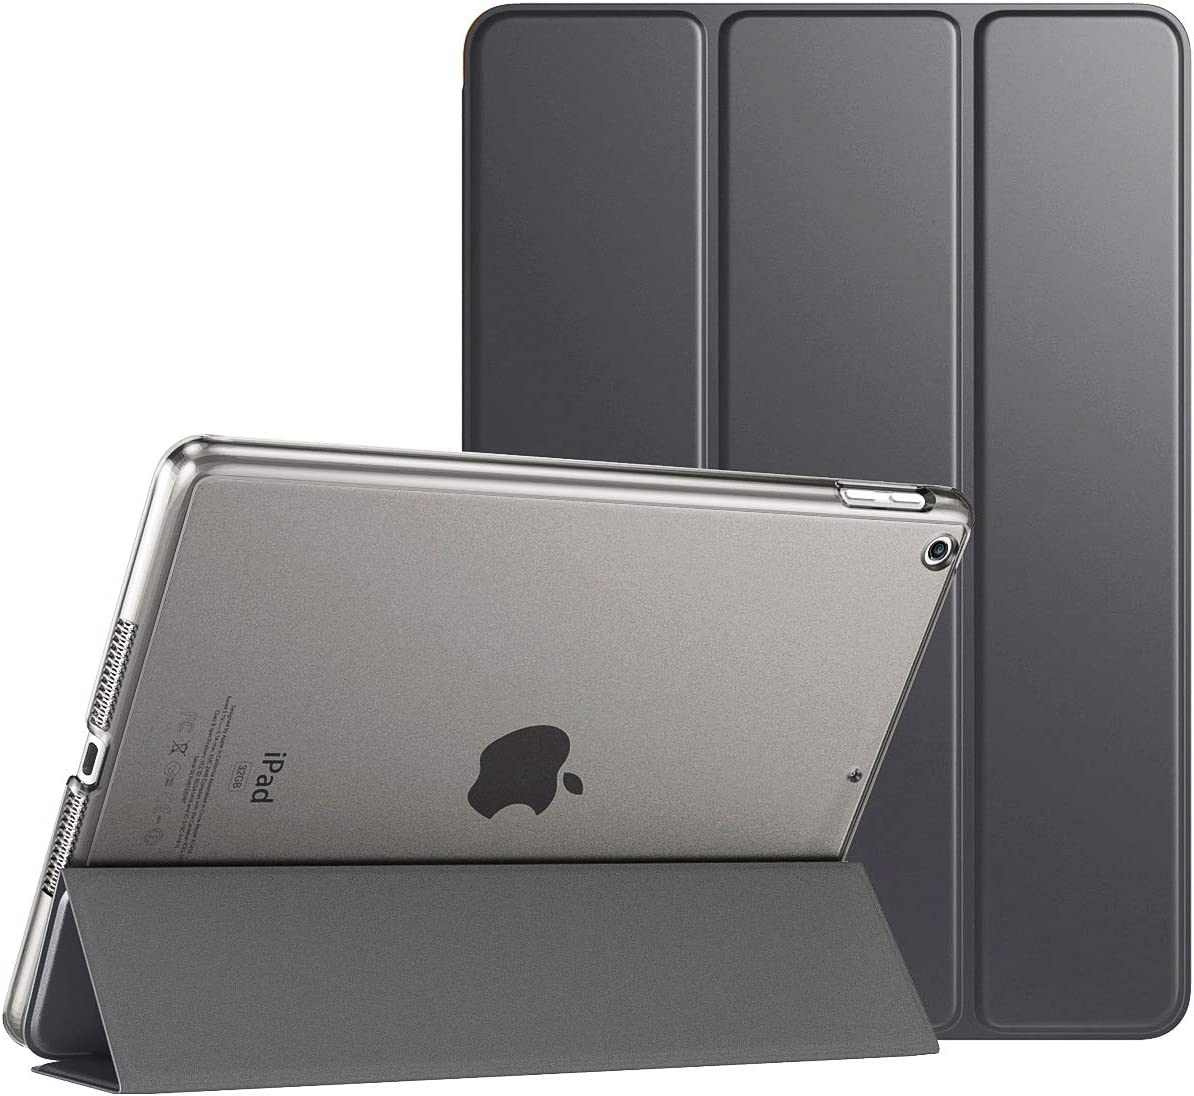 """TiMOVO Case for New iPad 8th Generation 2020 / iPad 7th Generation 10.2"""" 2019, Slim Translucent Frosted Back Protective Smart Cover Case with Auto Wake/Sleep for iPad 10.2-inch - Space Gray"""